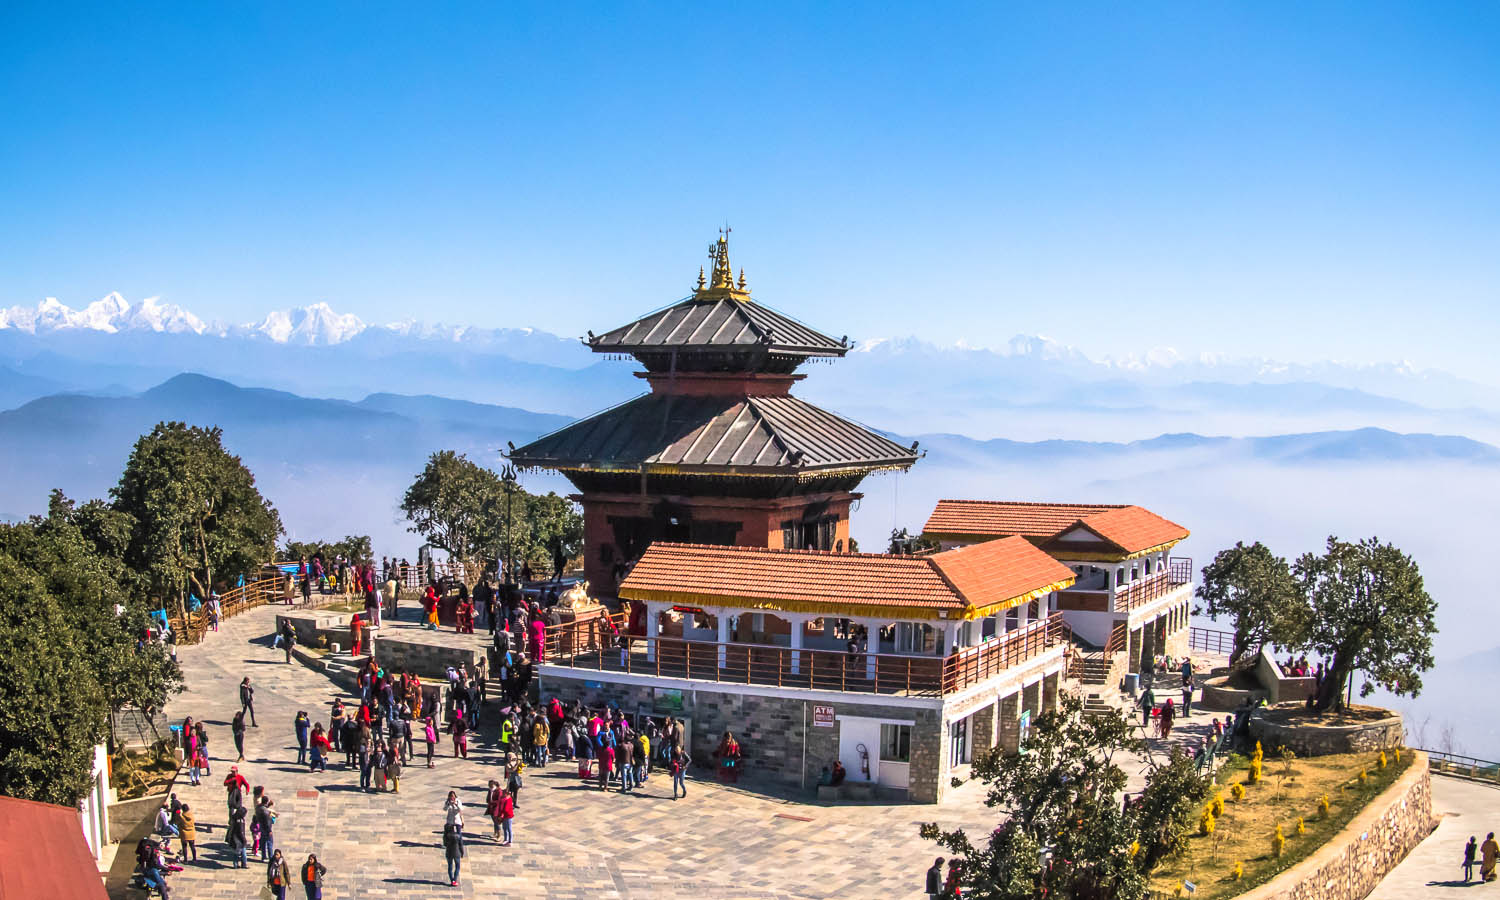 The view from the top across to the Himalayas on a clear day. Image: © Siraj Ahmad